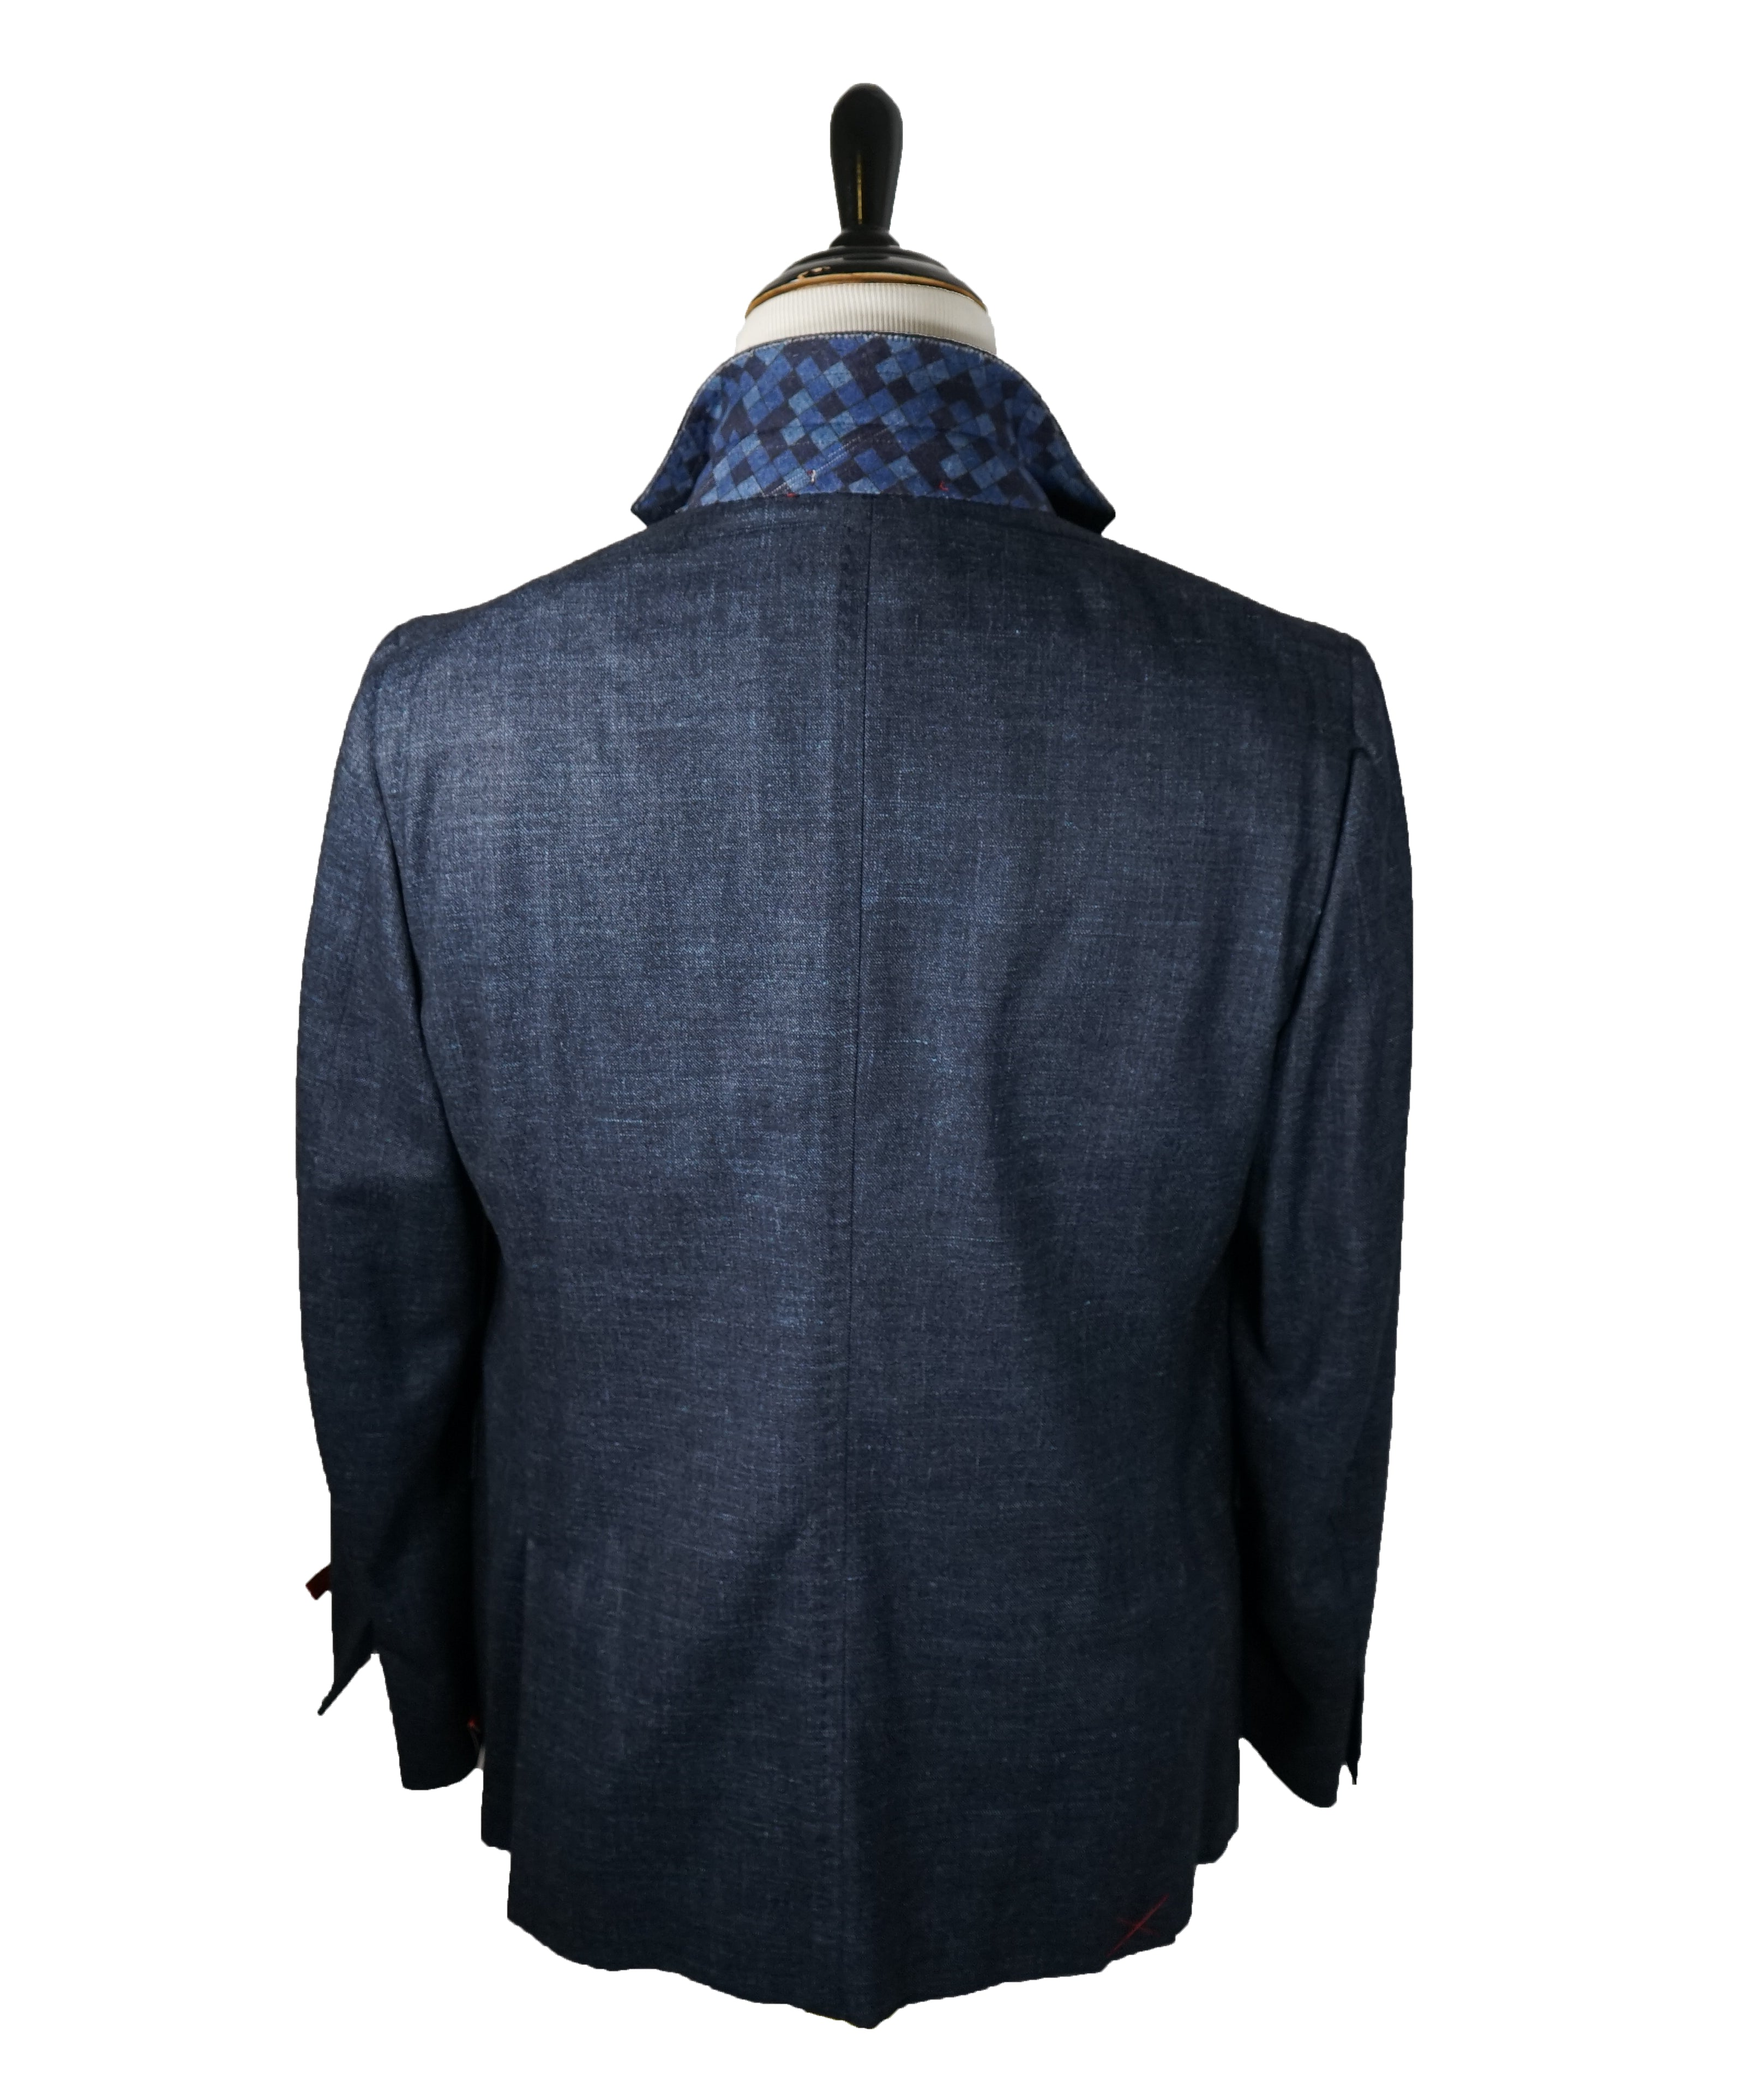 ISAIA - Cashmere Wool blend Melange Medium Blue Suit LOGO COLLAR - 46R